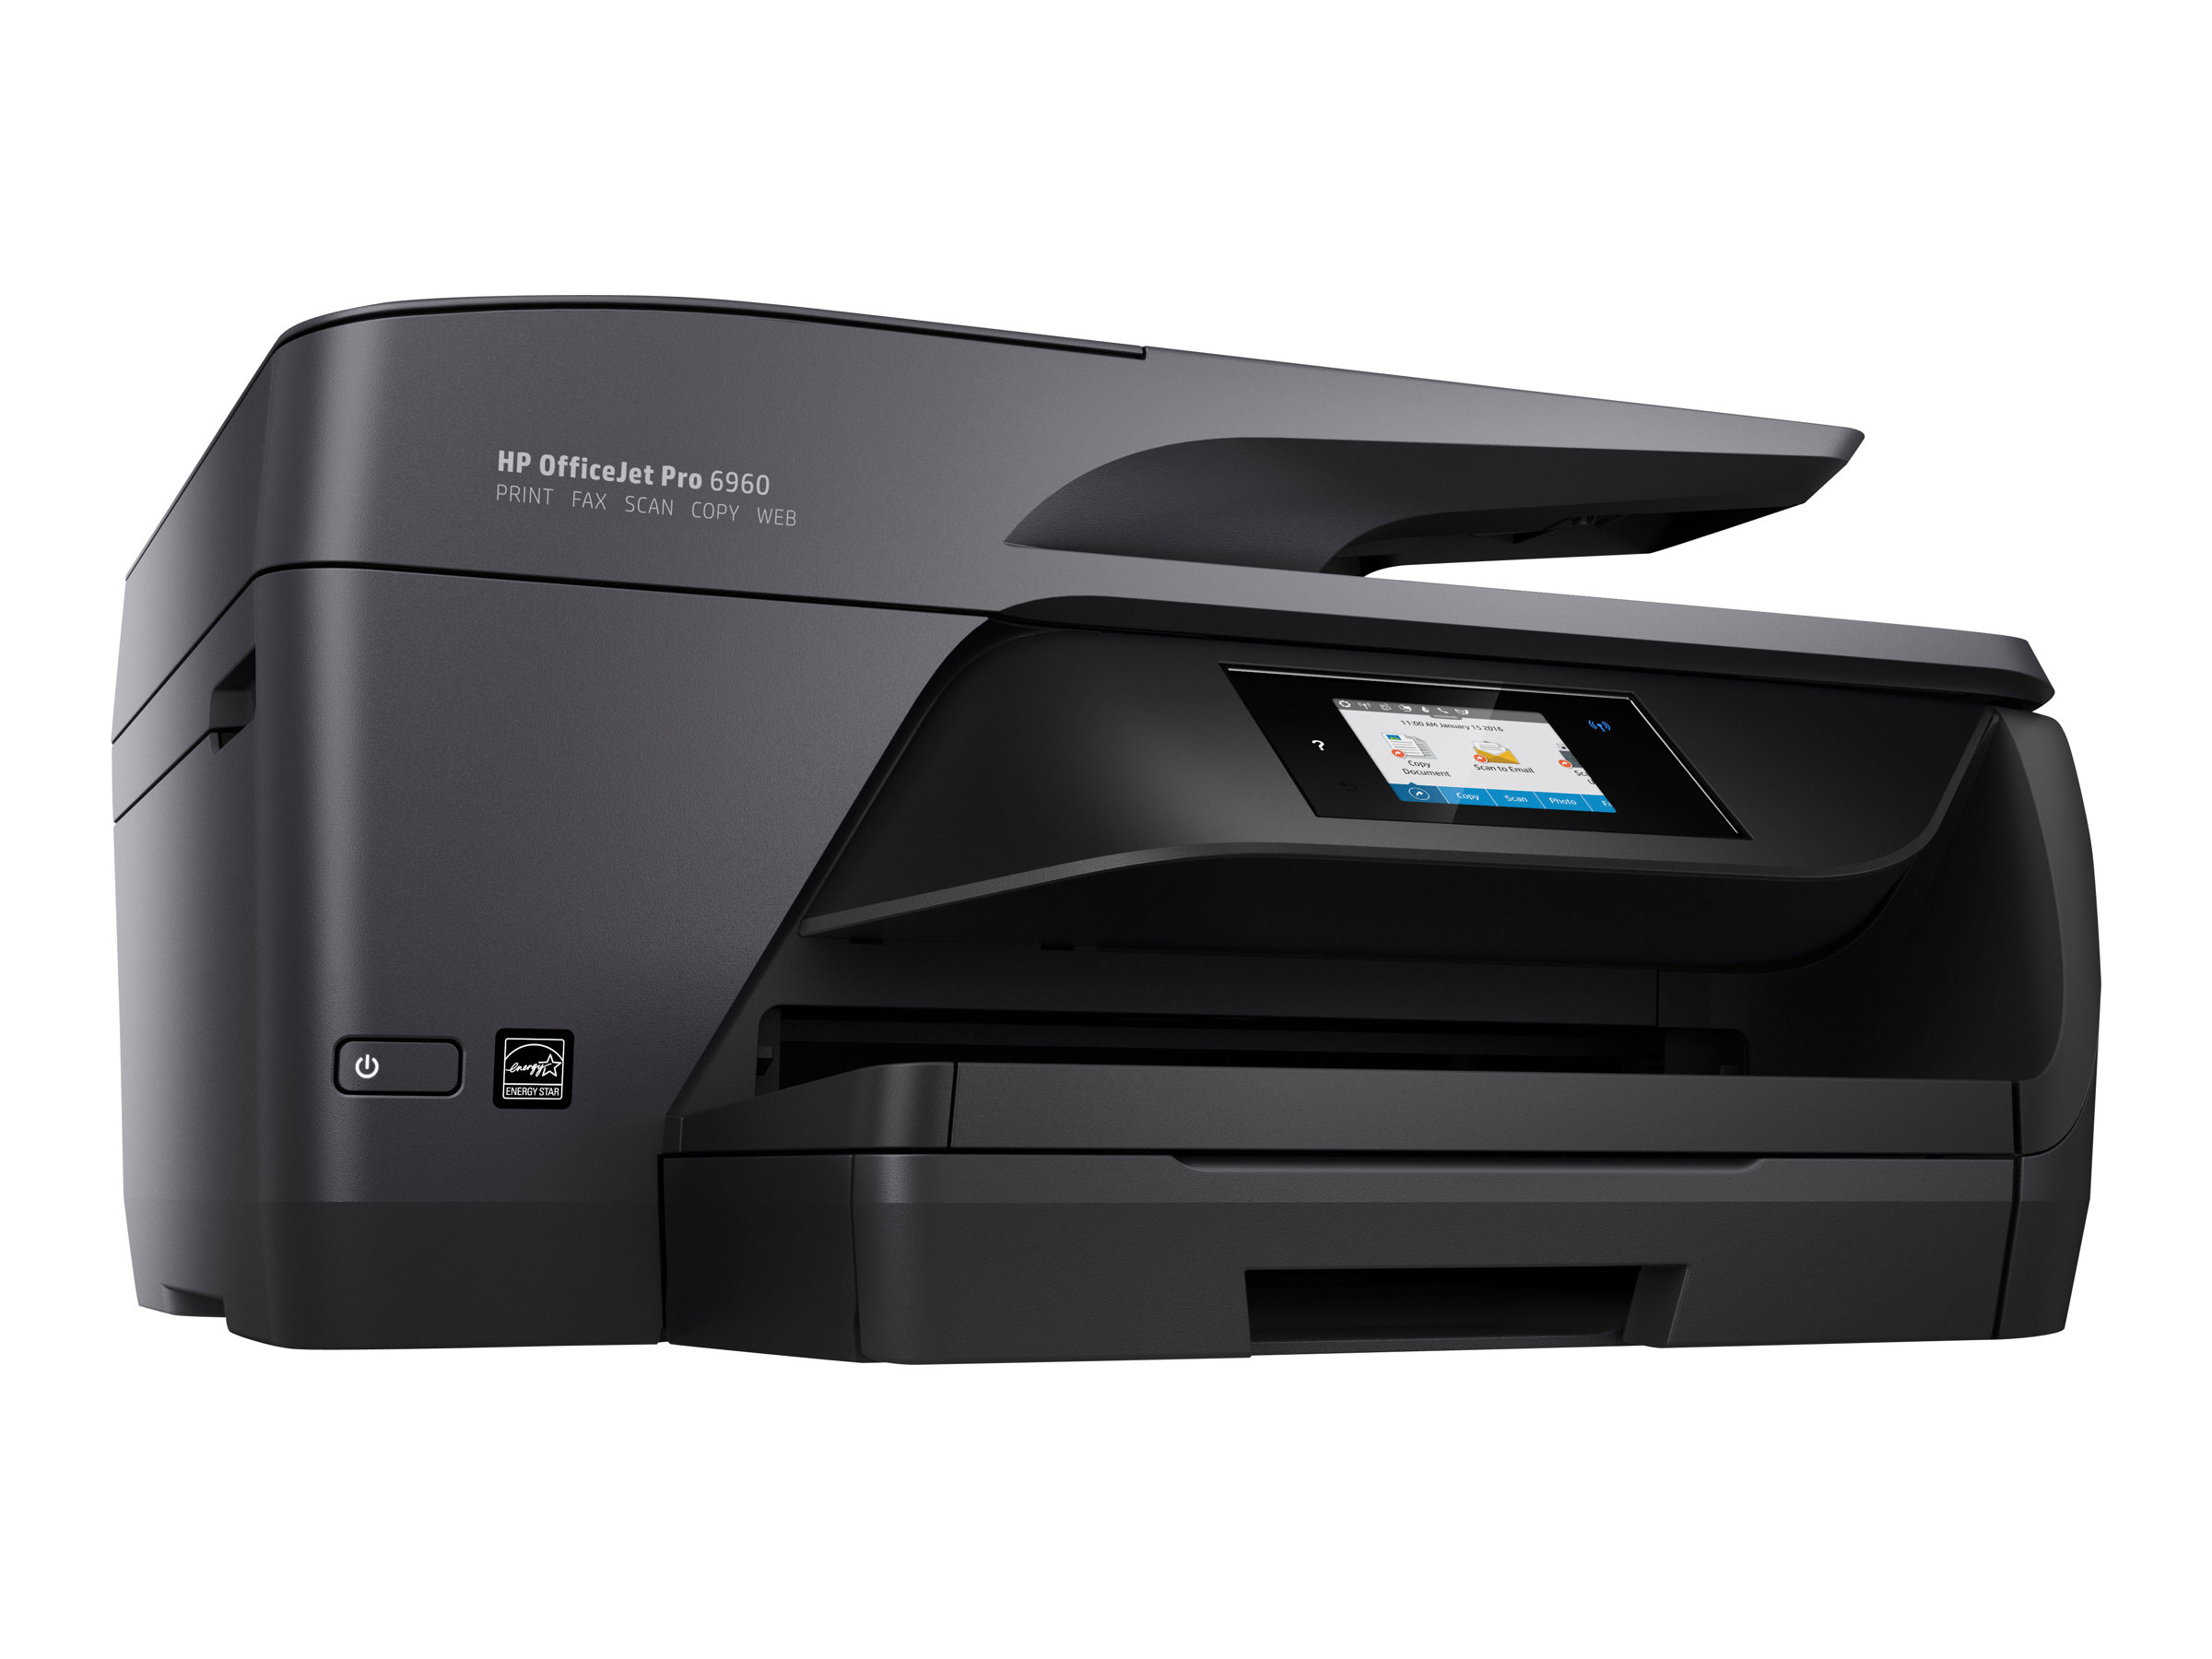 Imprimante HP Color Officejet Pro 6960 All-in-One vue 3/4 gauche